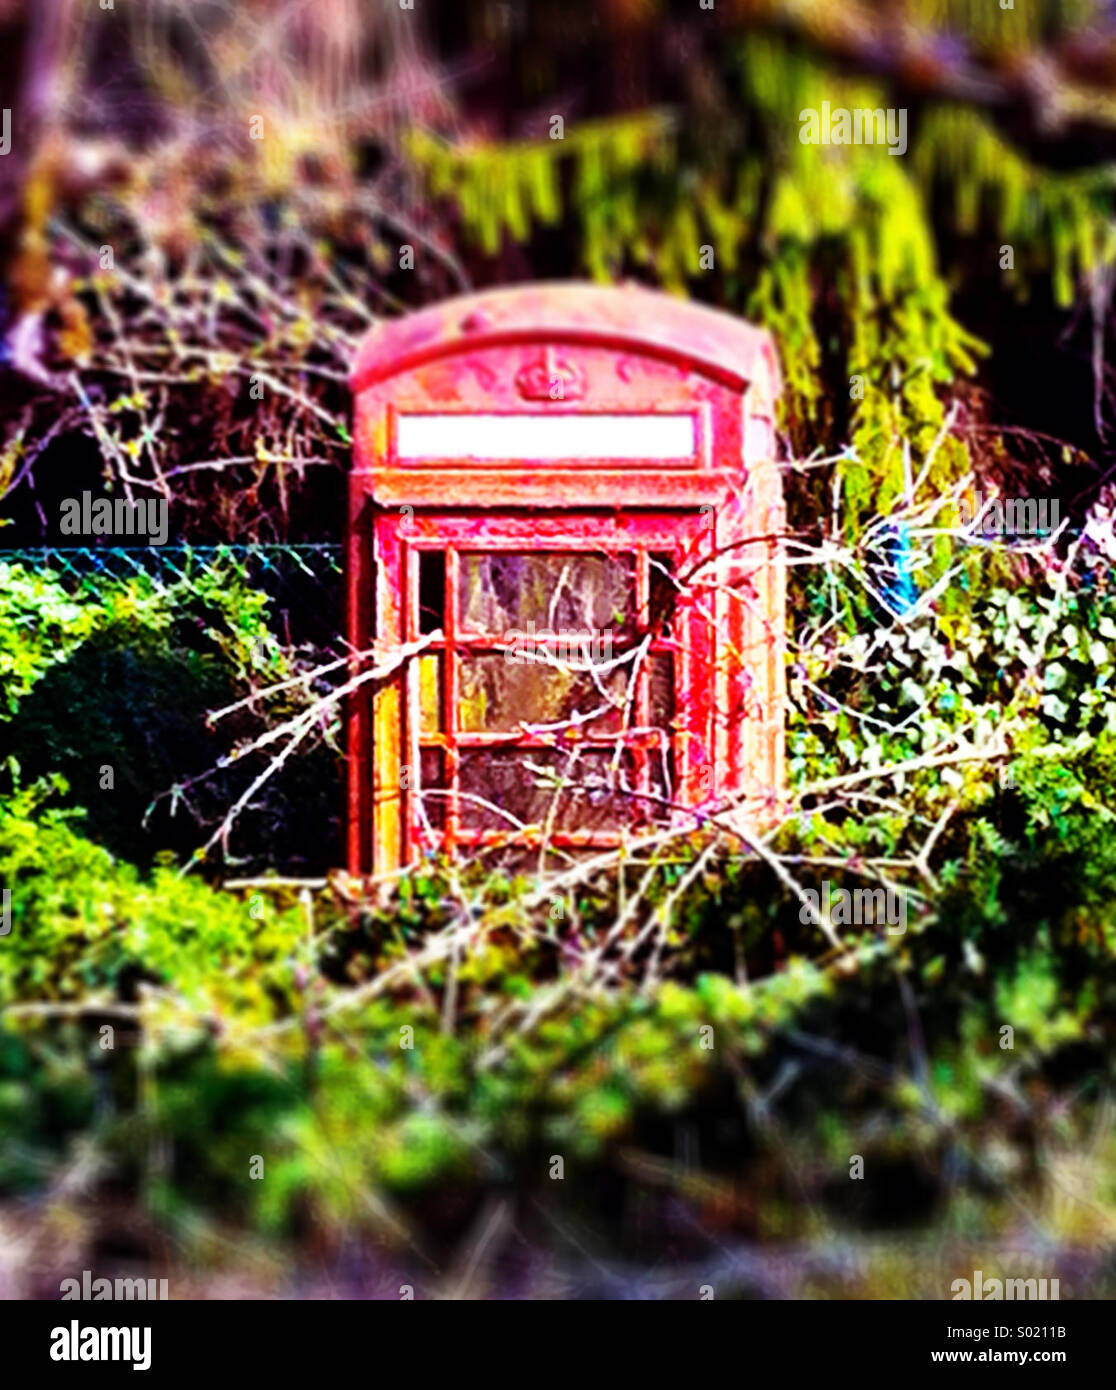 Old British phone box, now abandoned and overgrown - Stock Image